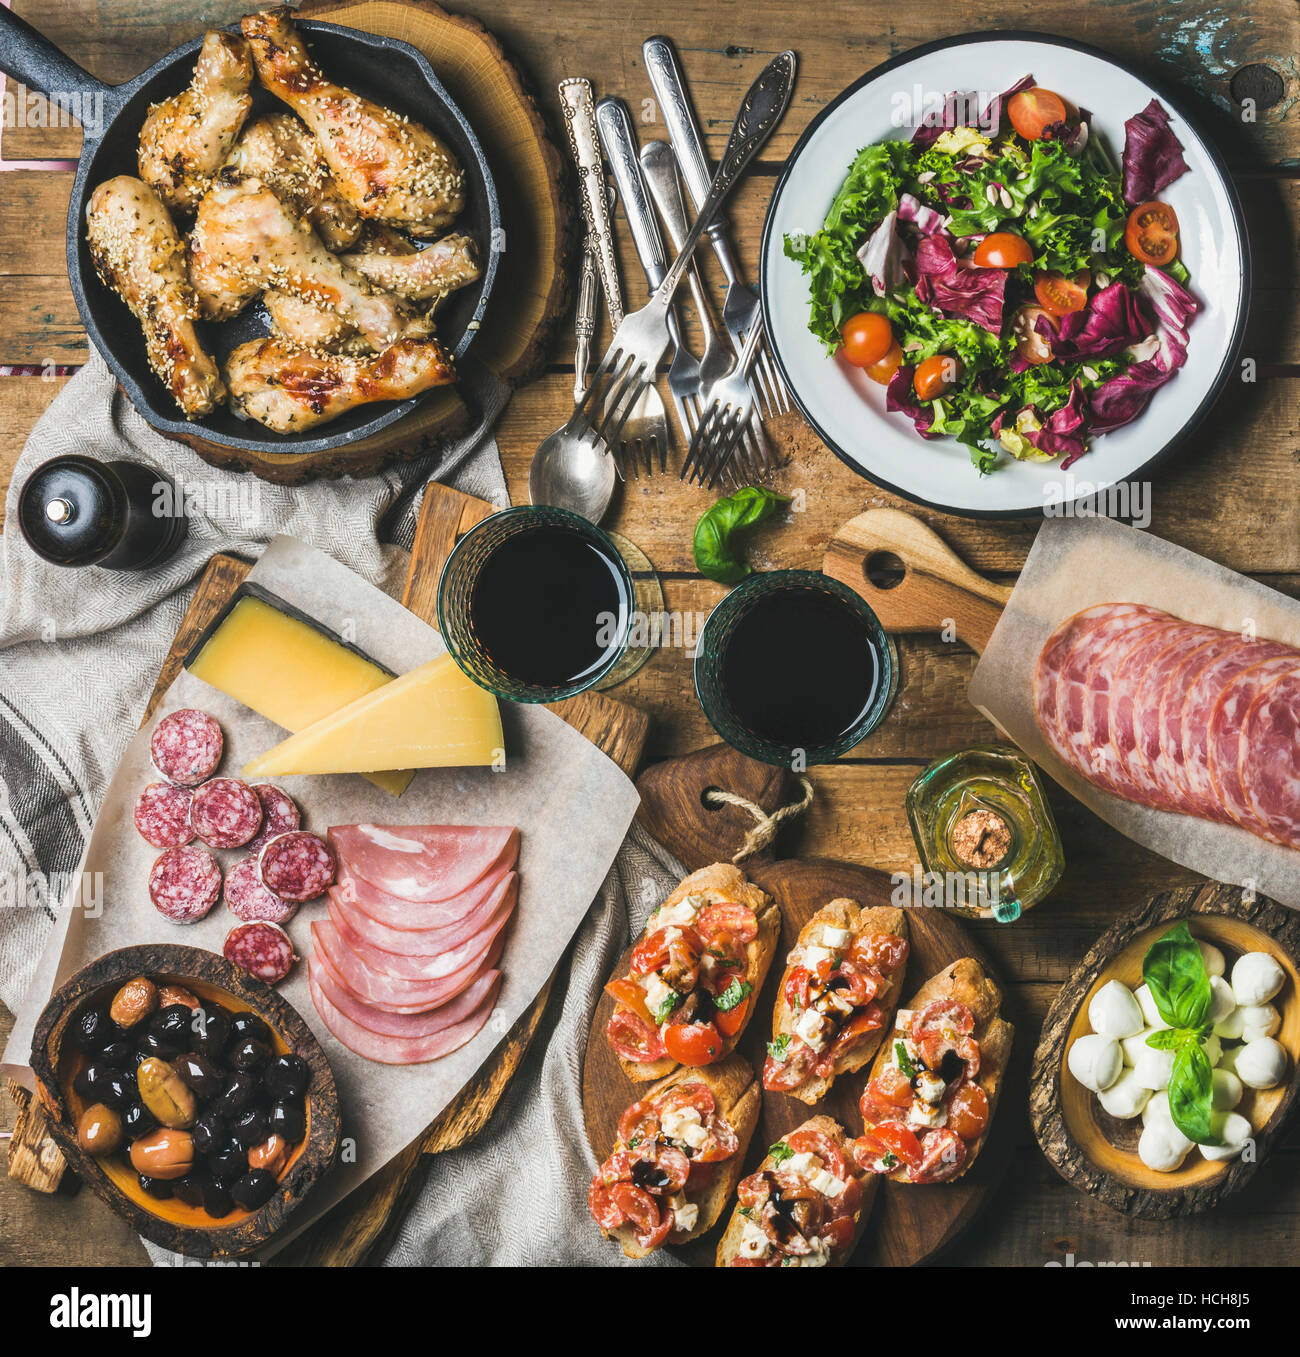 Home dinner, party table arrangement. Rustic table set with salad, olives, chicken, tomato, feta cheese brushettas, - Stock Image